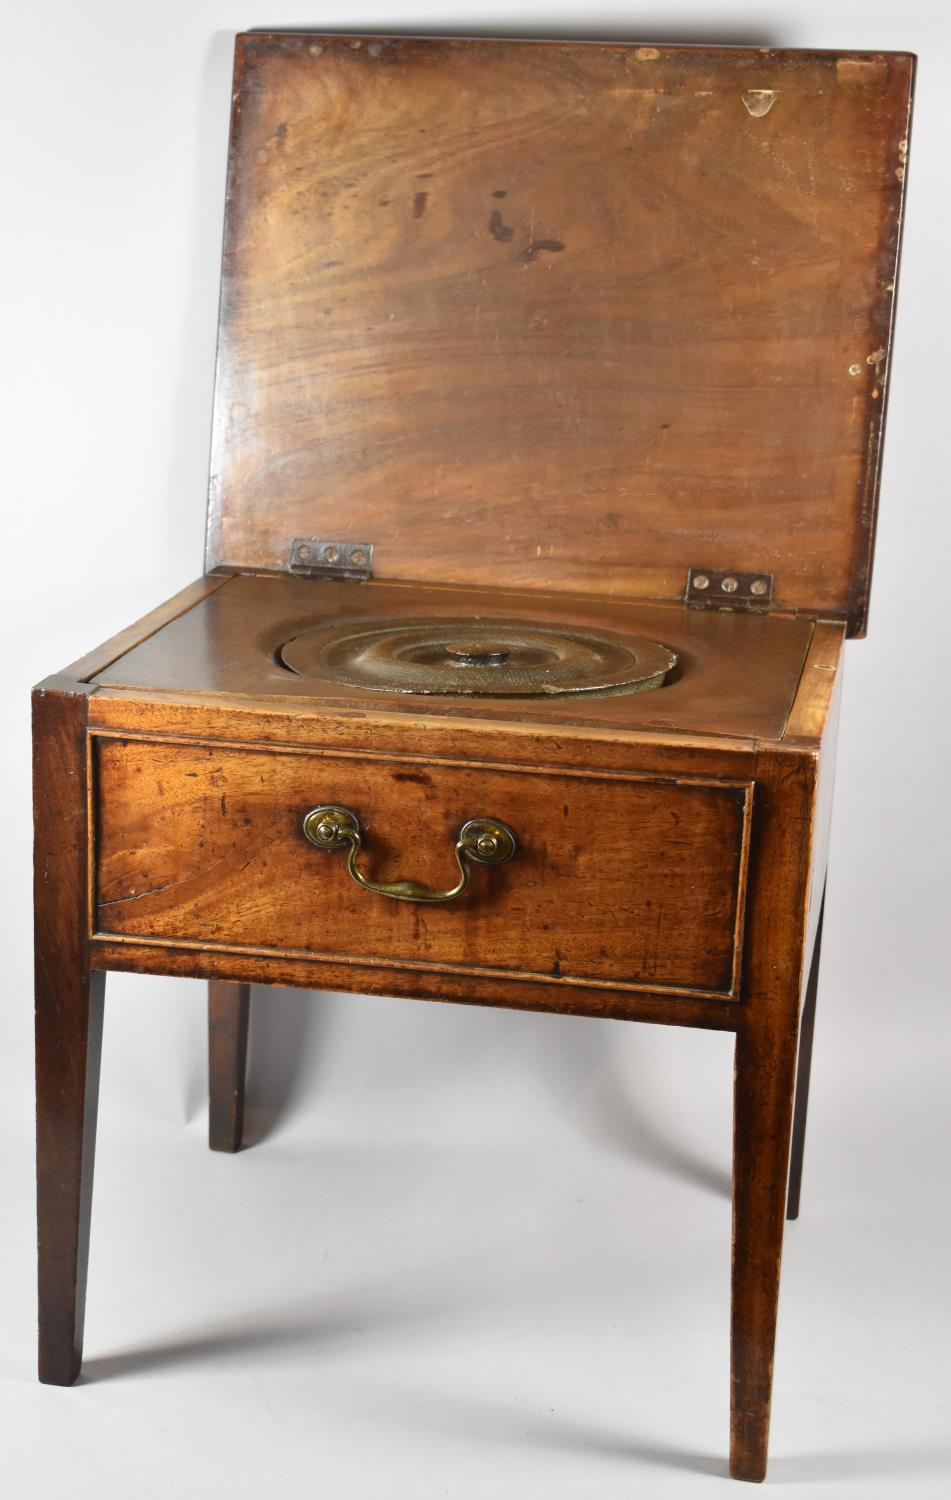 A Mid 19th Century Oak Box Commode with Hinged Top, Missing Liner, 48cm wide - Image 2 of 2